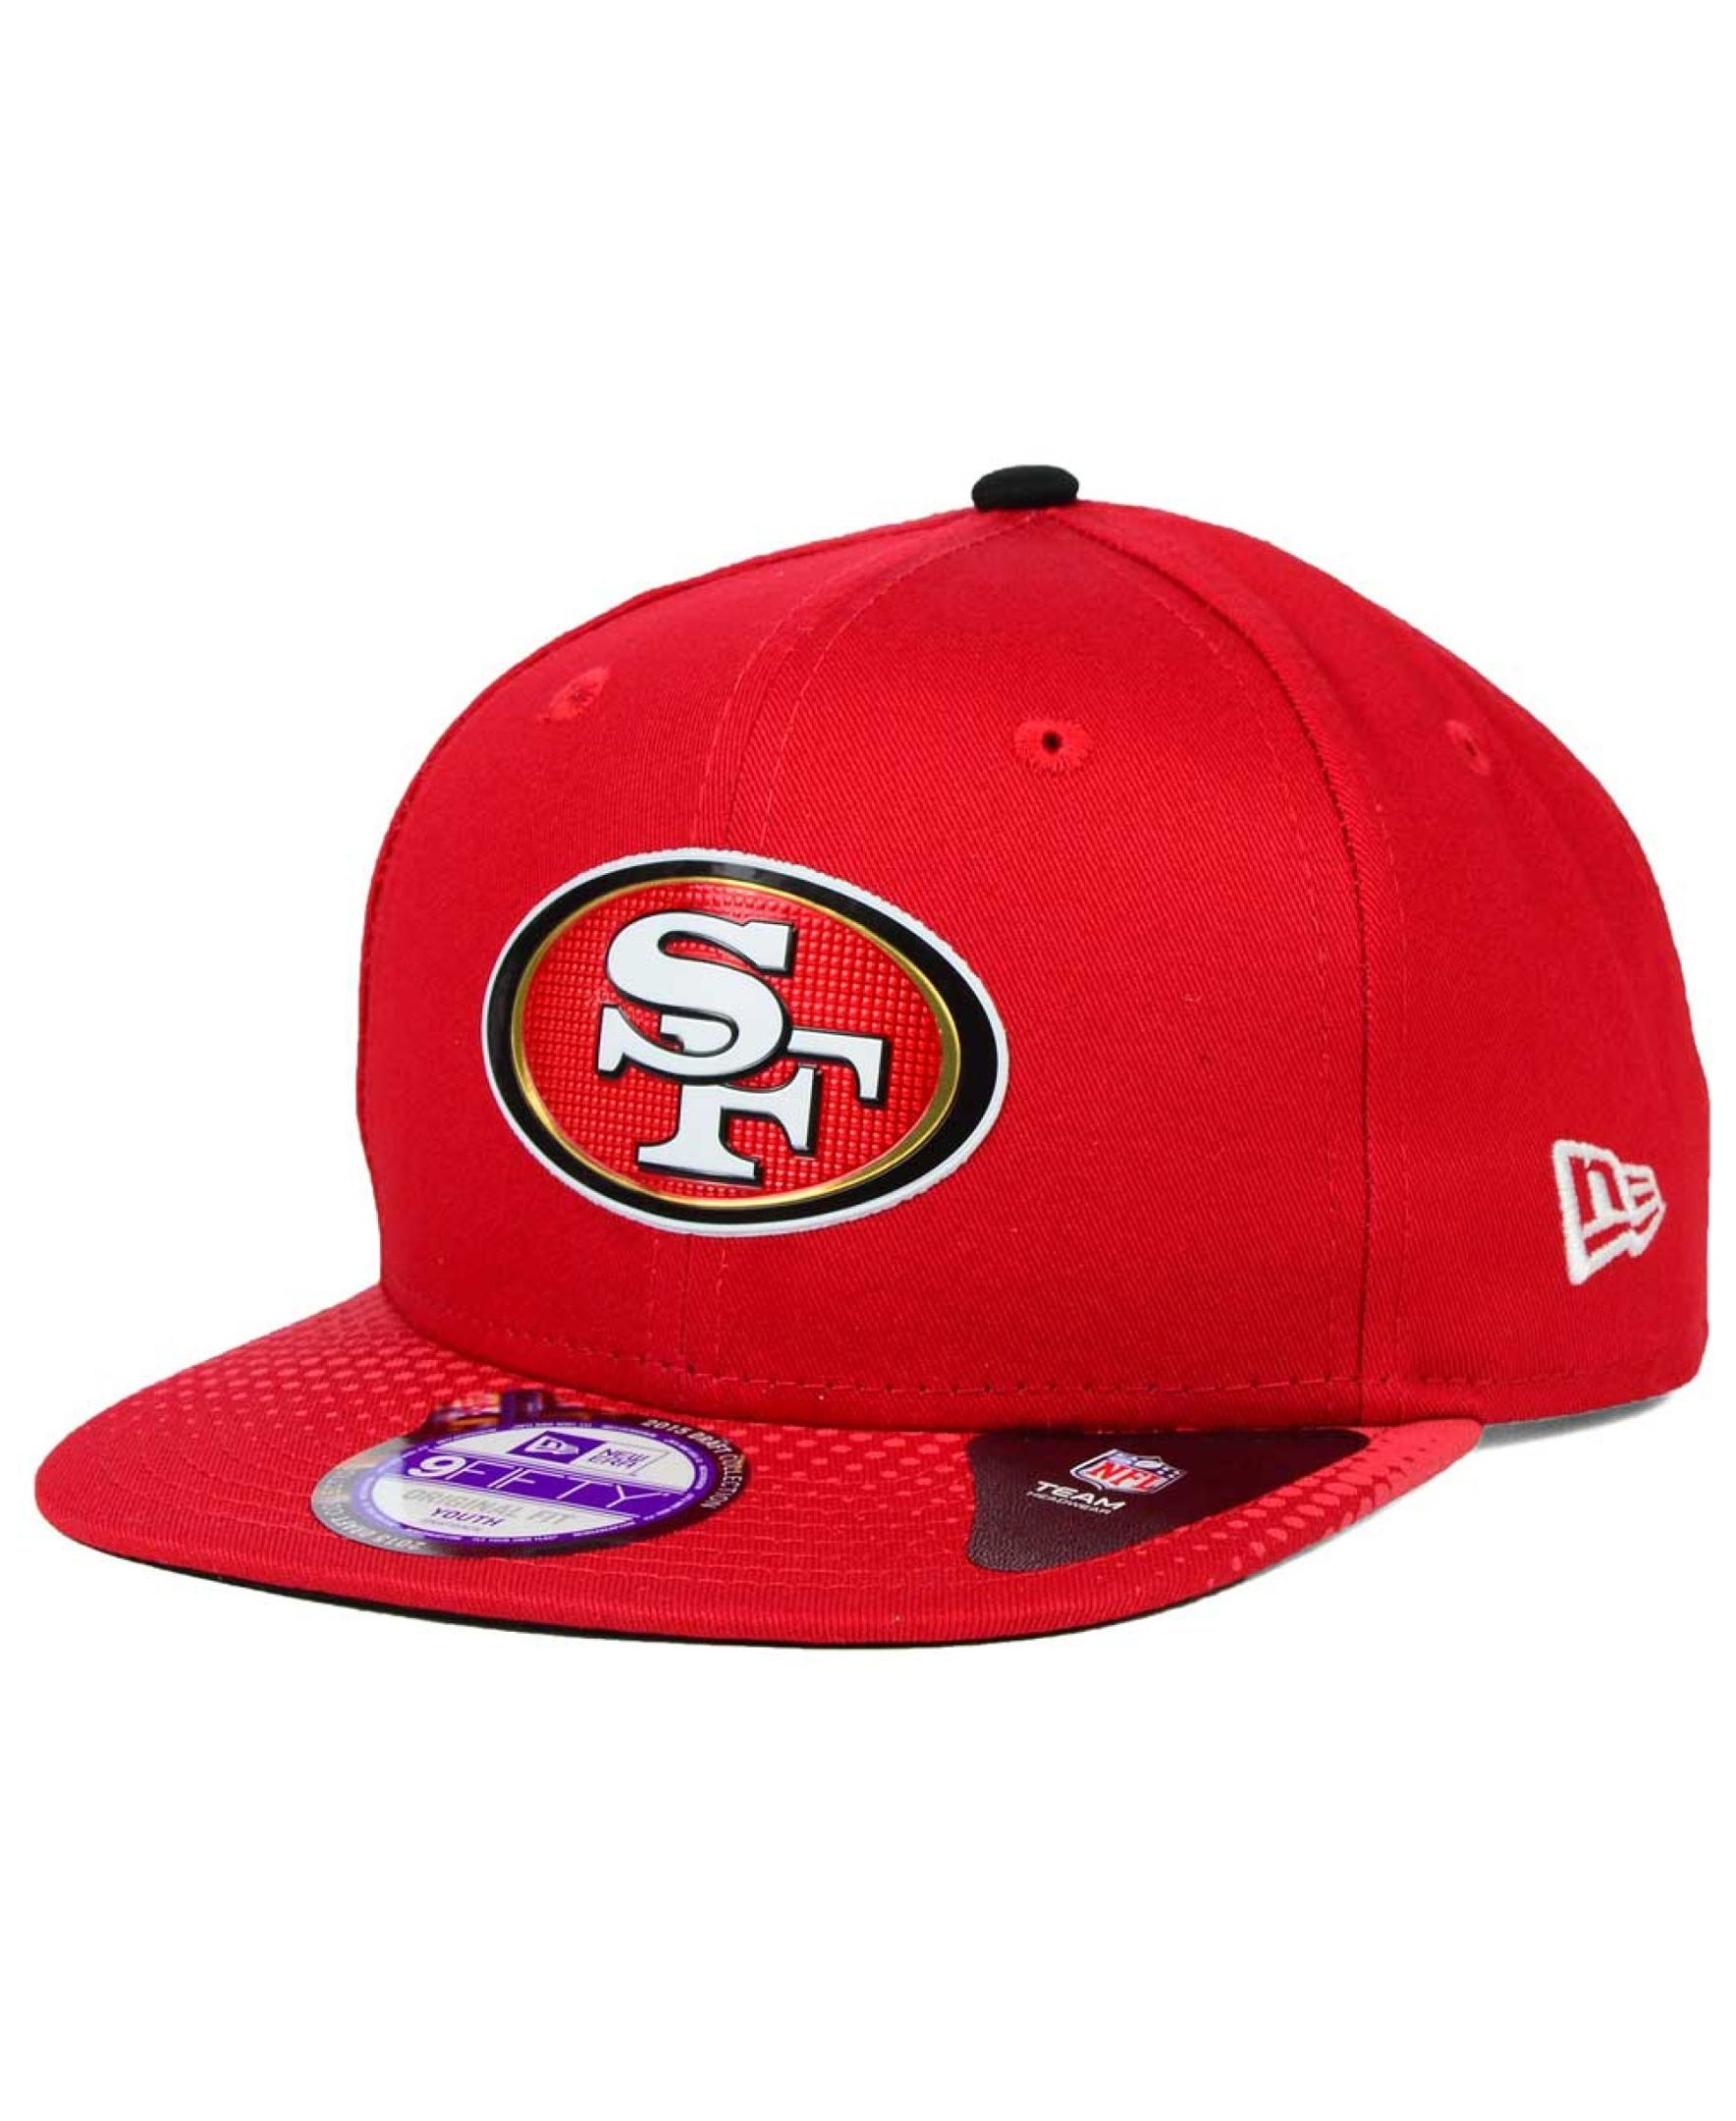 premium selection 85078 f8351 New Era Kids  San Francisco 49ers 2015 Nfl Draft 9FIFTY Snapback Cap